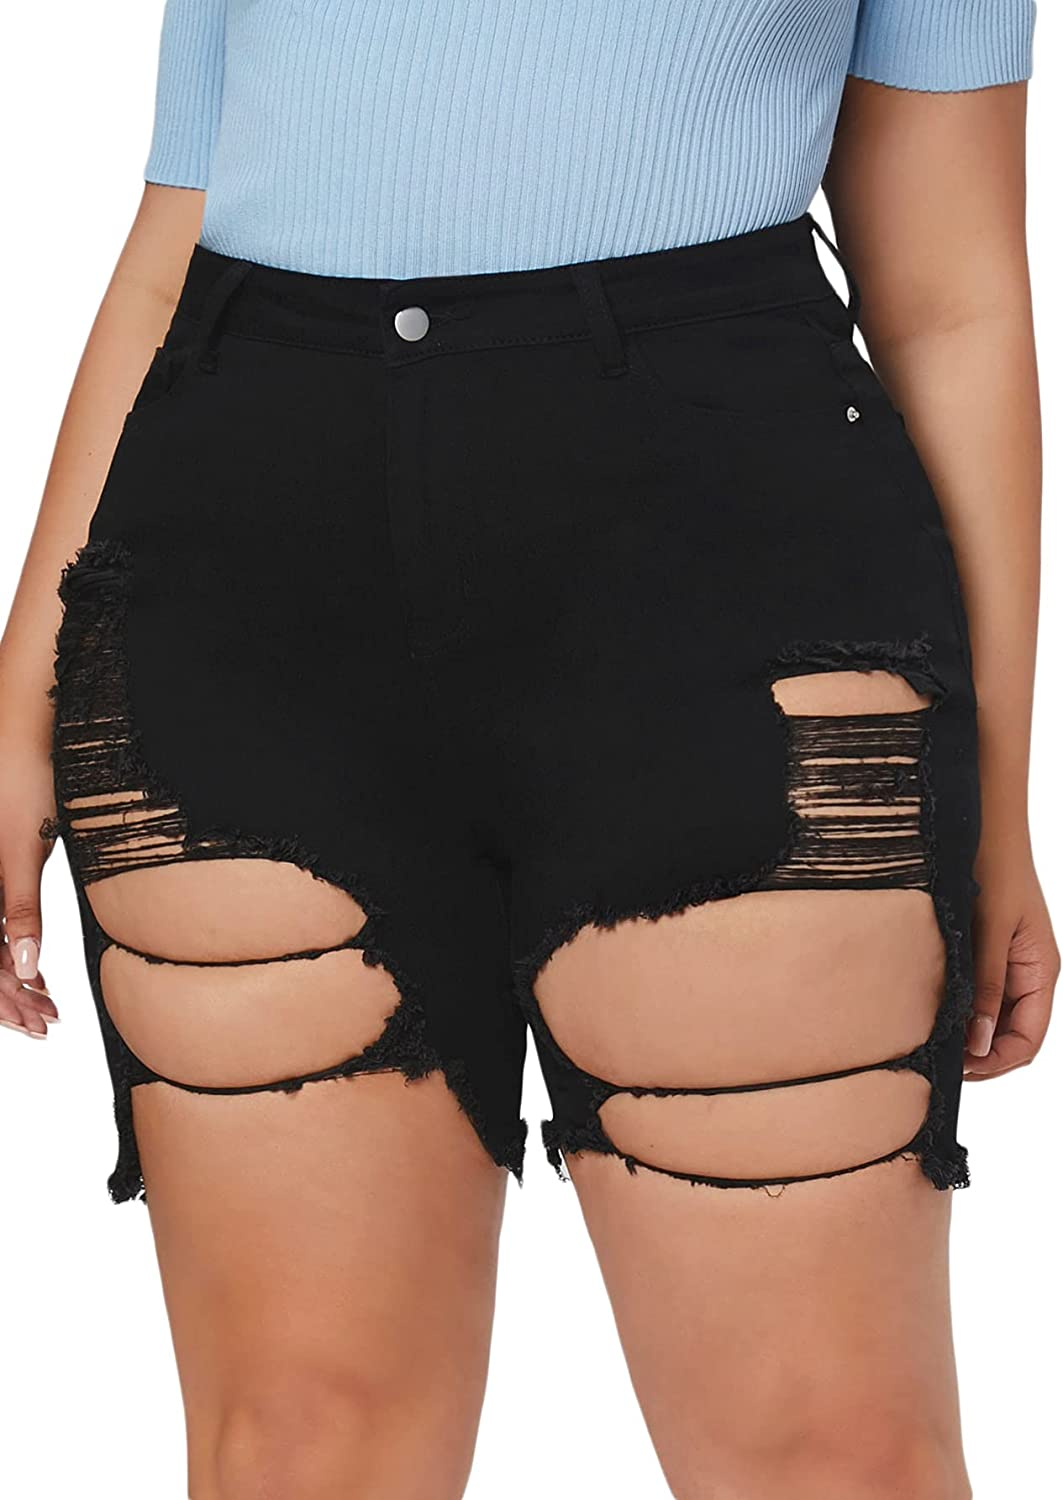 Floerns Women's Plus Size High Waisted Destroyed Denim Shorts Ripped Jeans